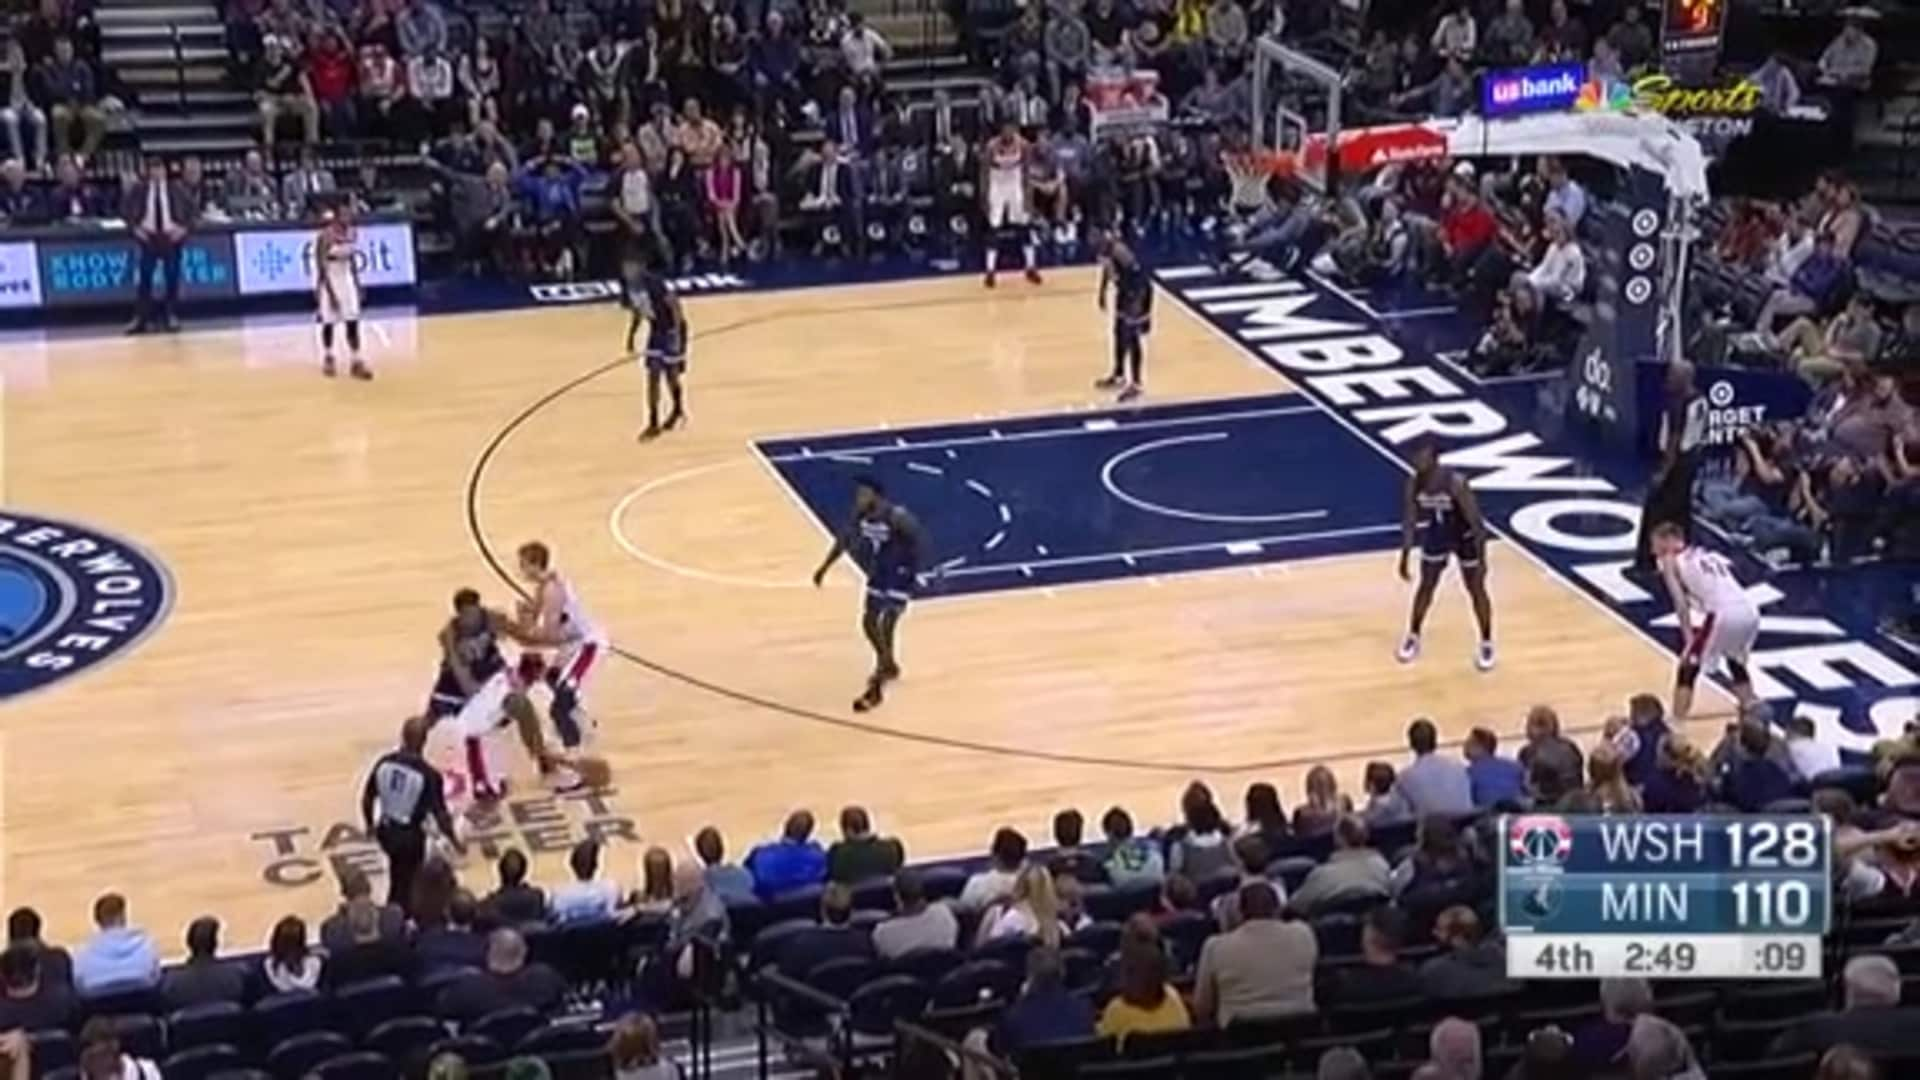 Highlights: Wizards vs. Timberwolves - 11/15/19